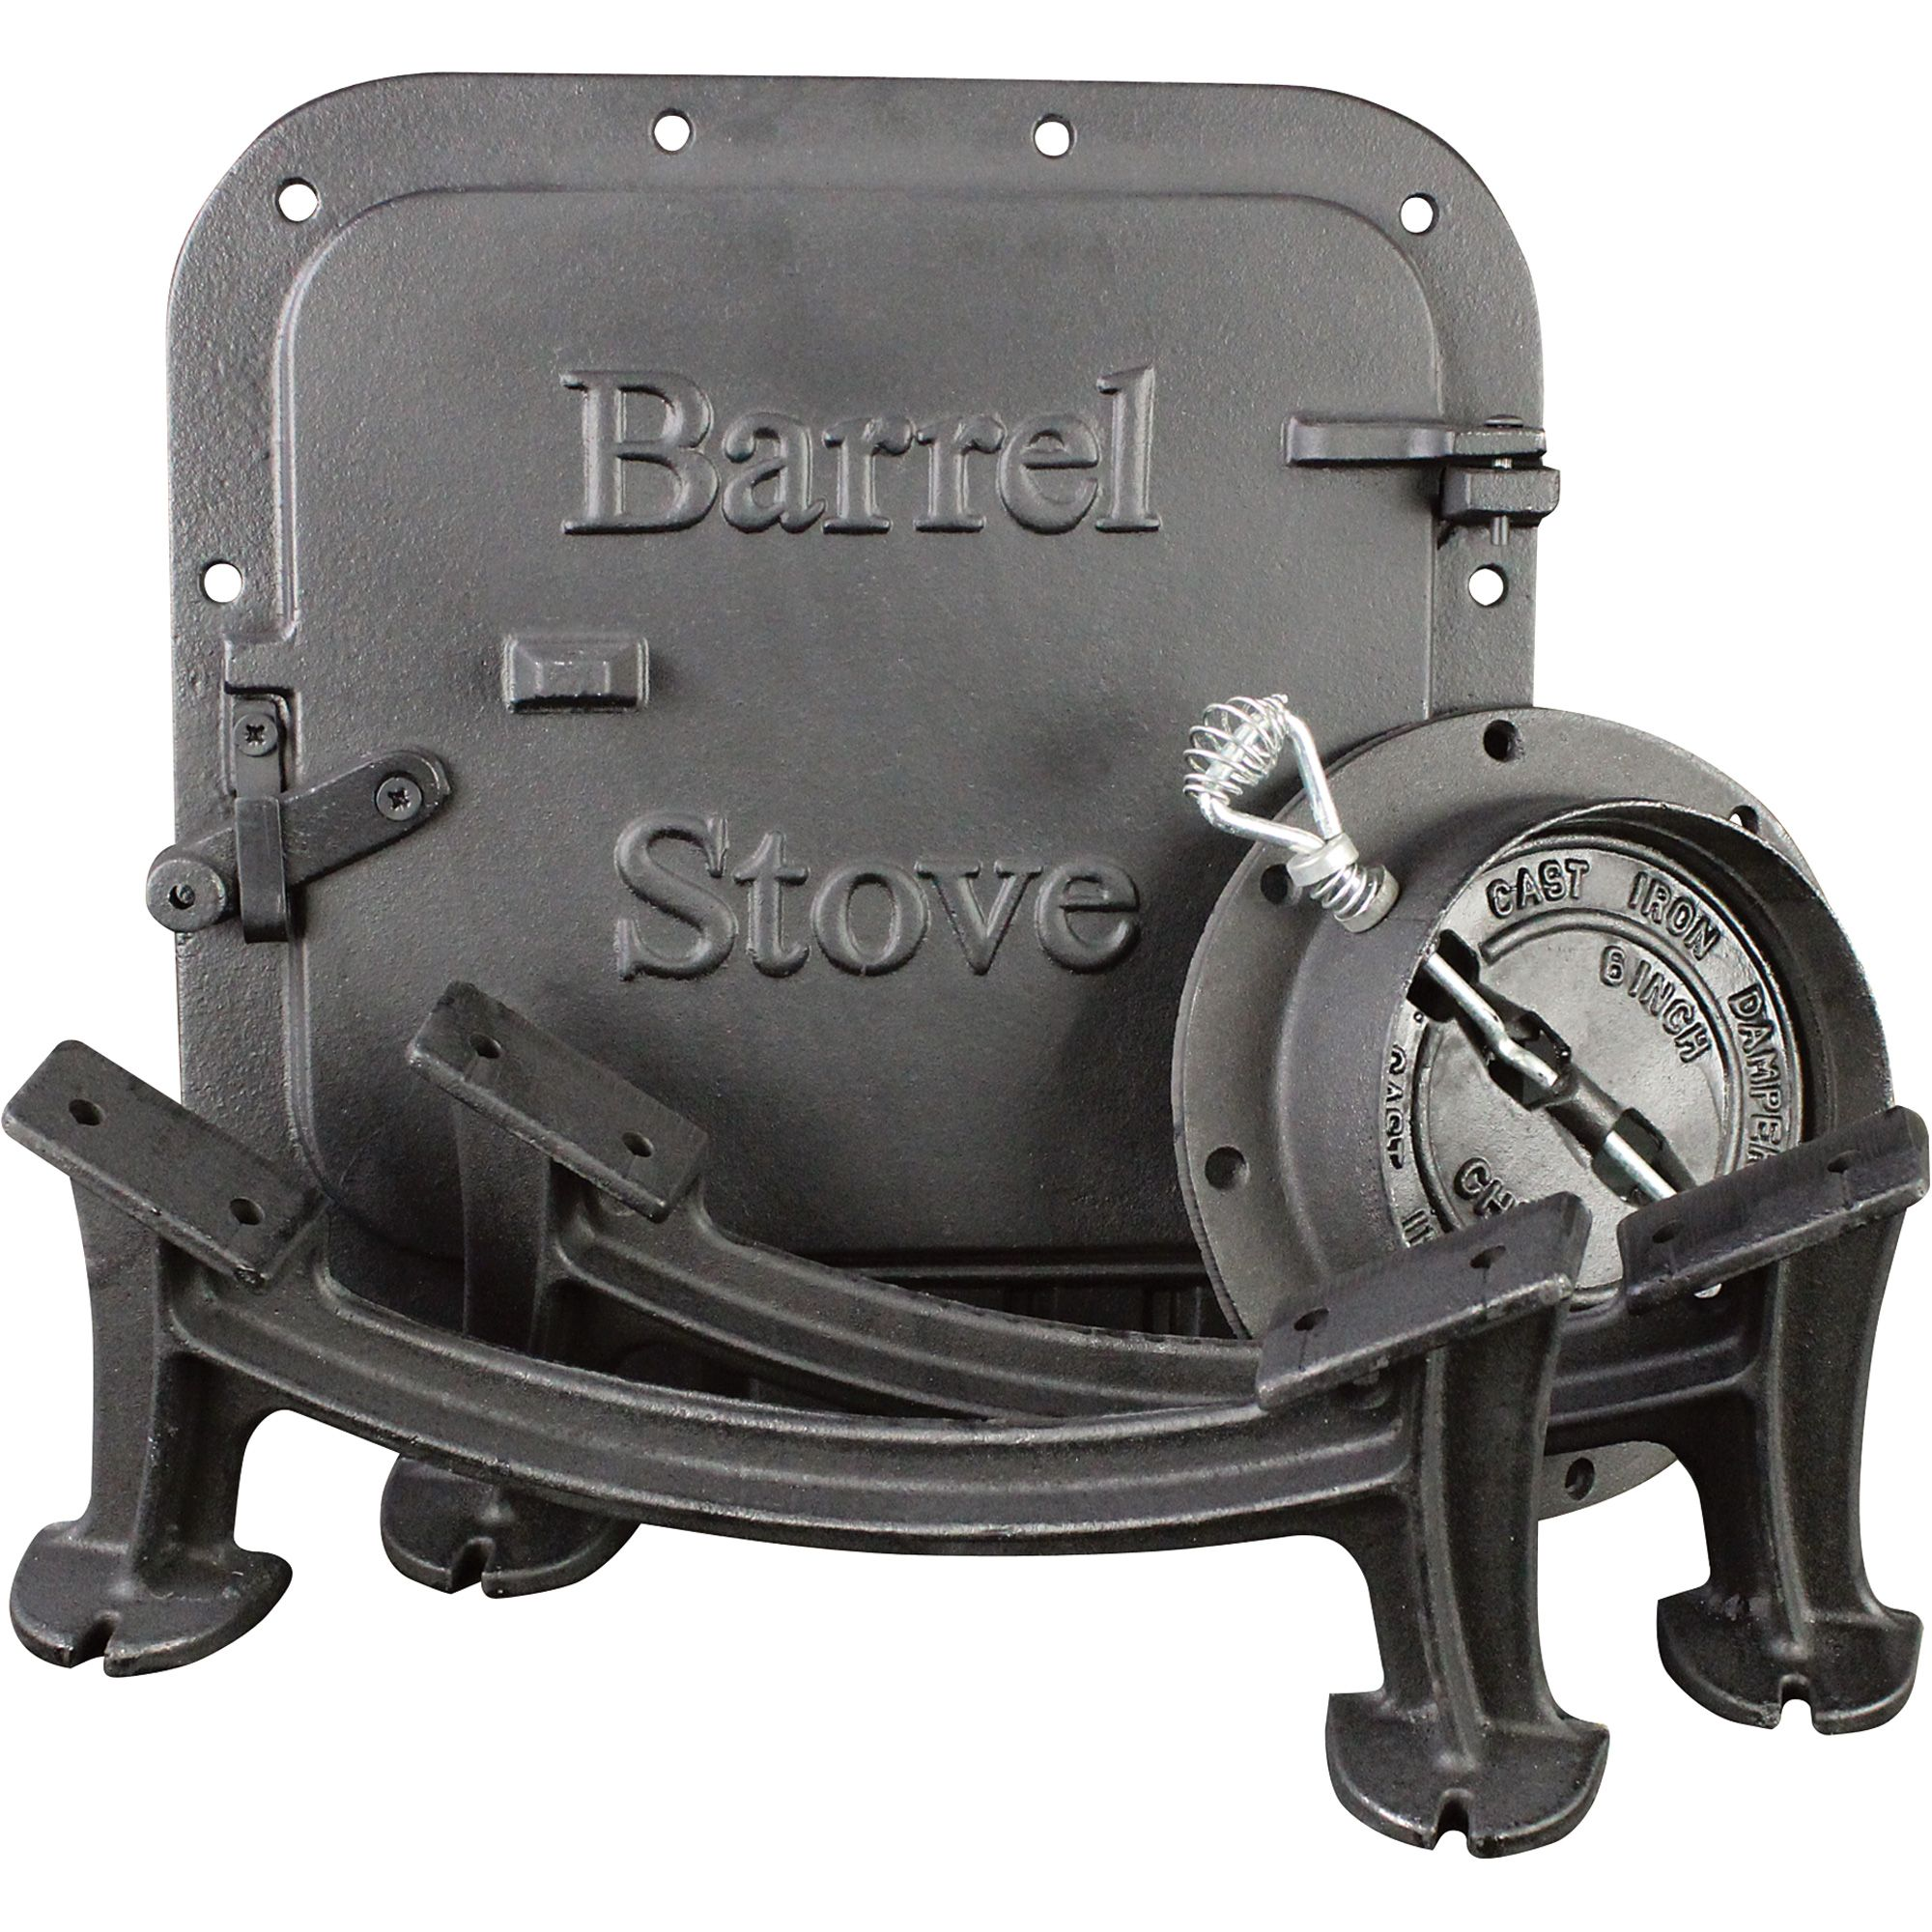 us stove barrel camp stove kit model bk100e 30 gallon drum